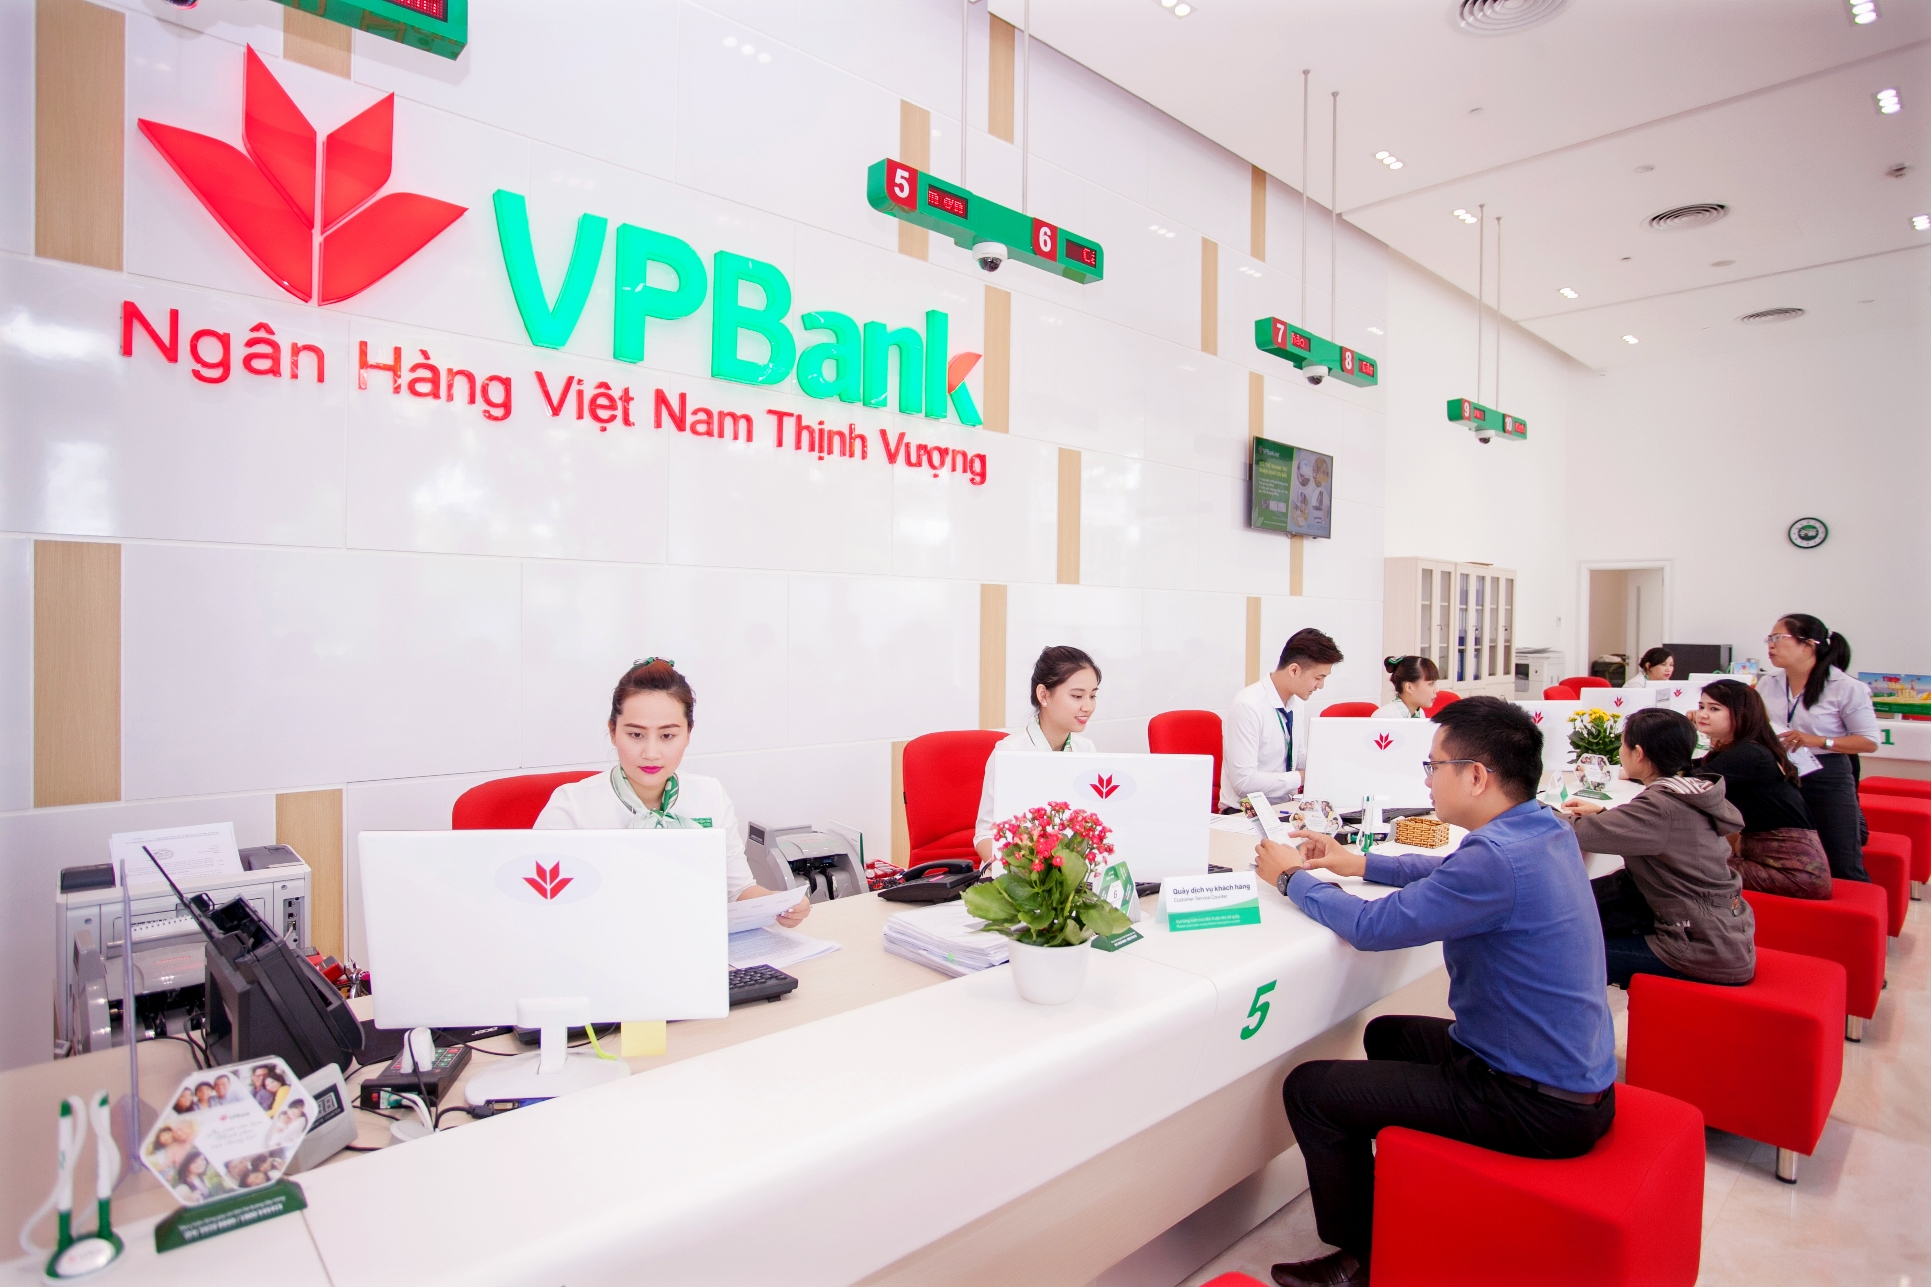 https://www.vpbank.com.vn/sites/default/files/pictures/anhgiaodich.jpg